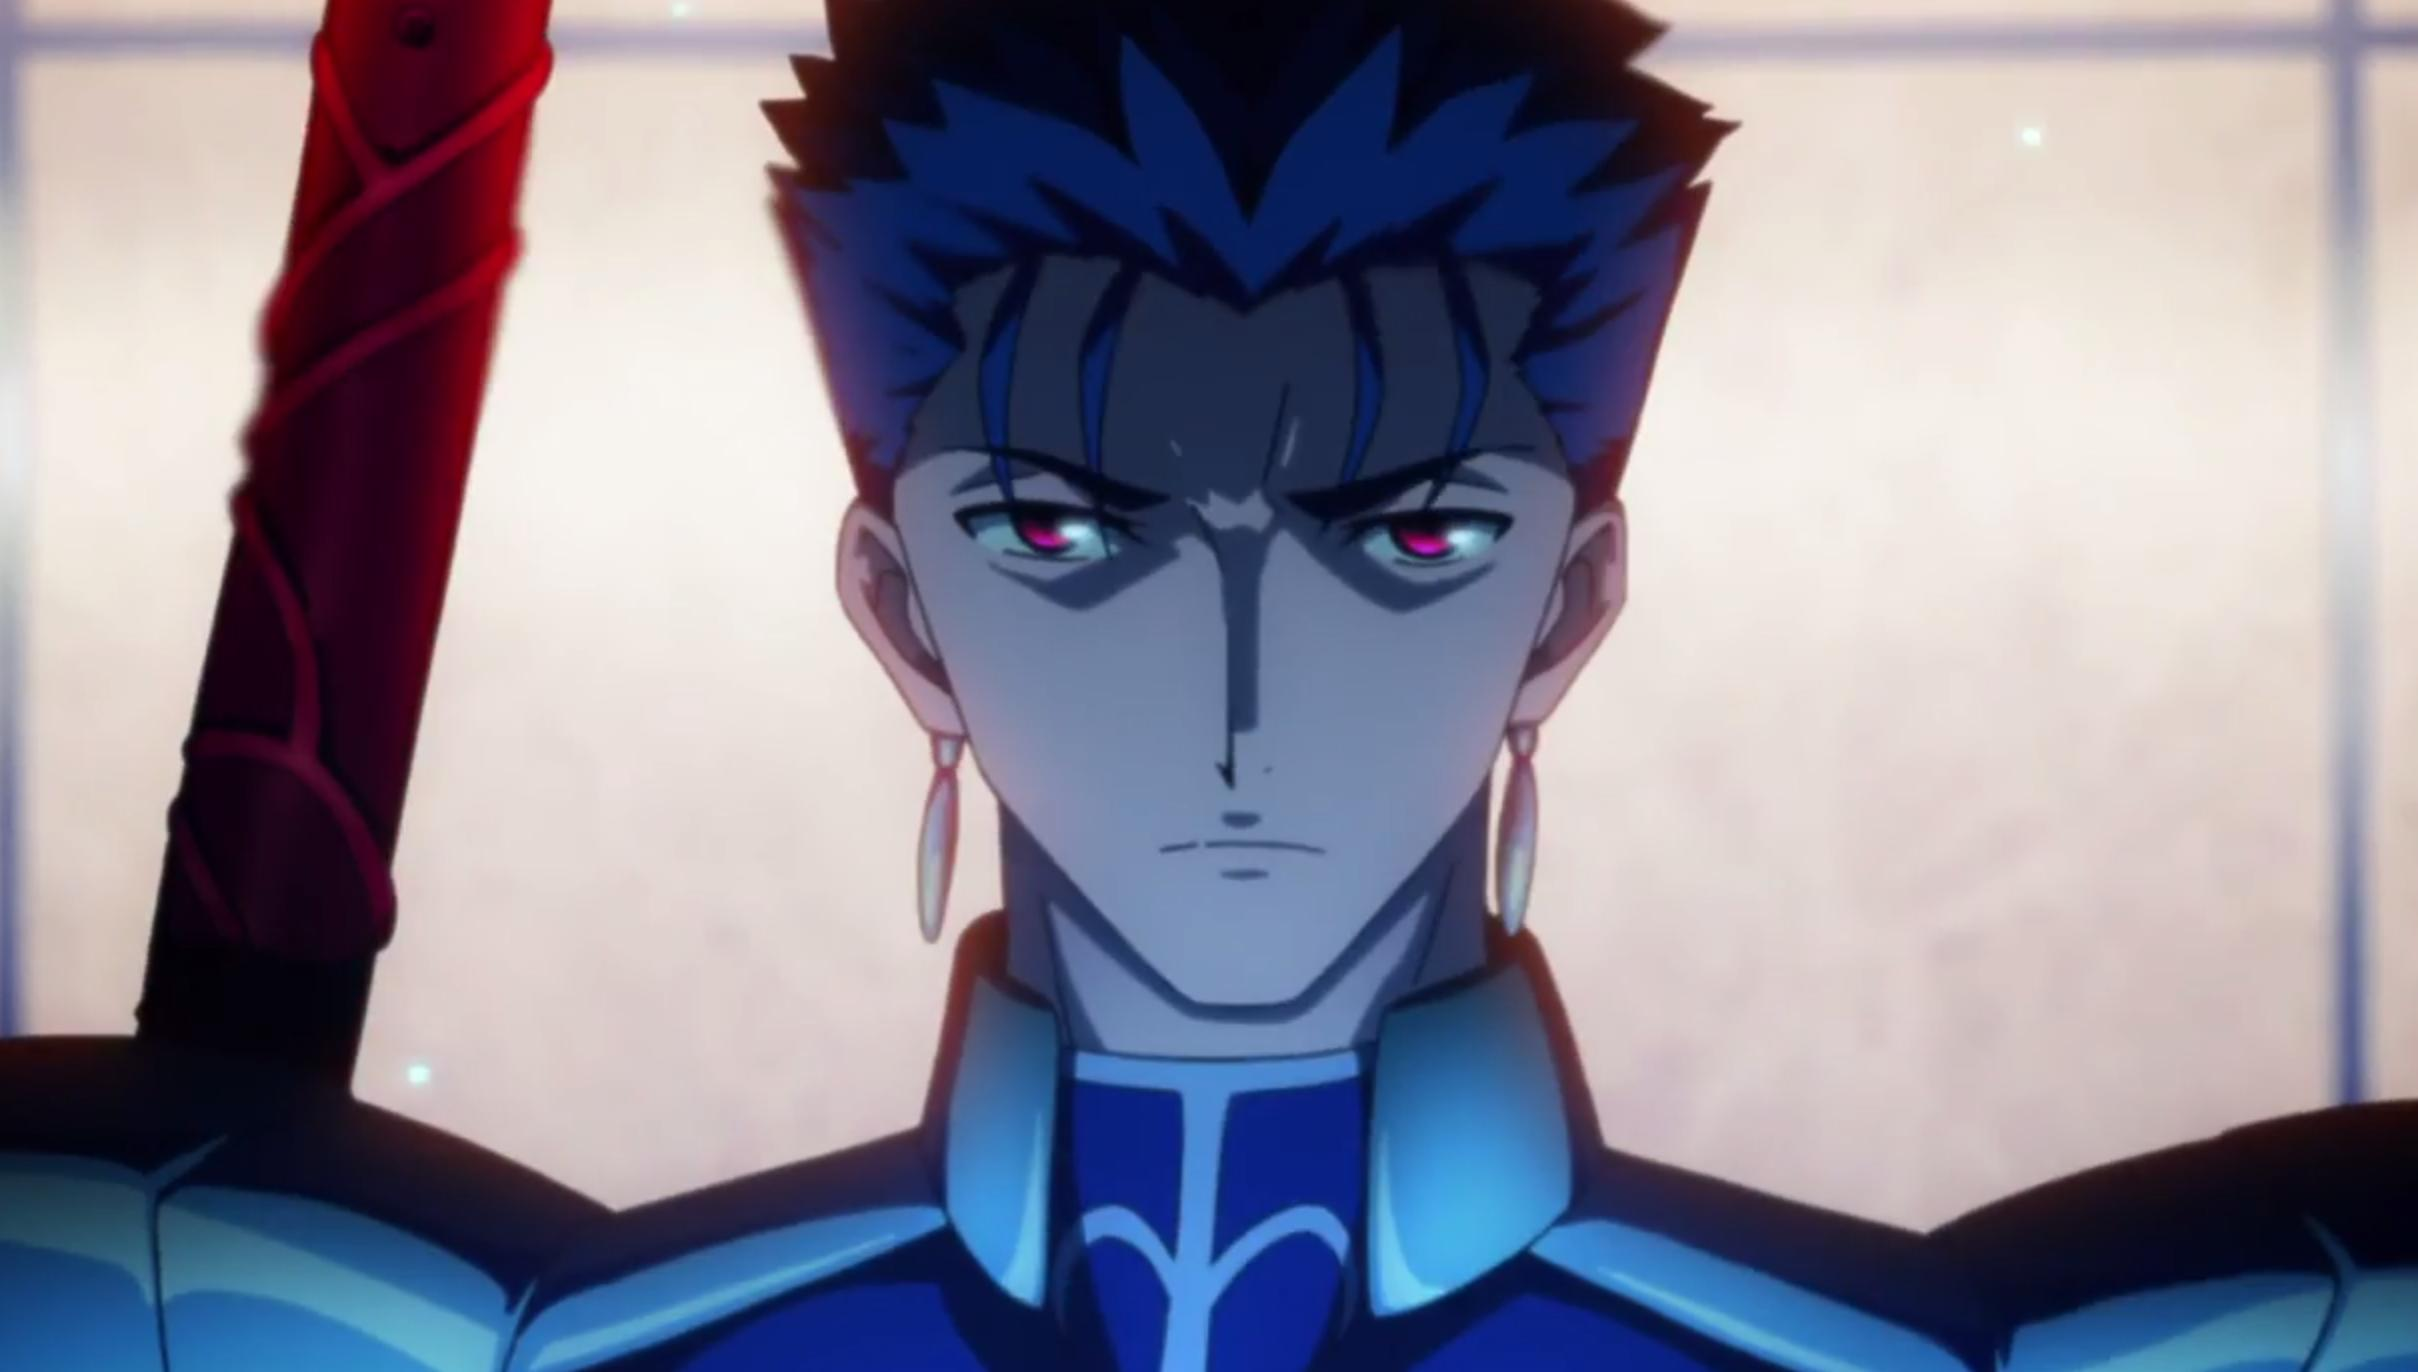 New Footage Revealed of Fate:Stay Night- Unlimited Blade Works Season 2 for Premiere on Wednesday 5